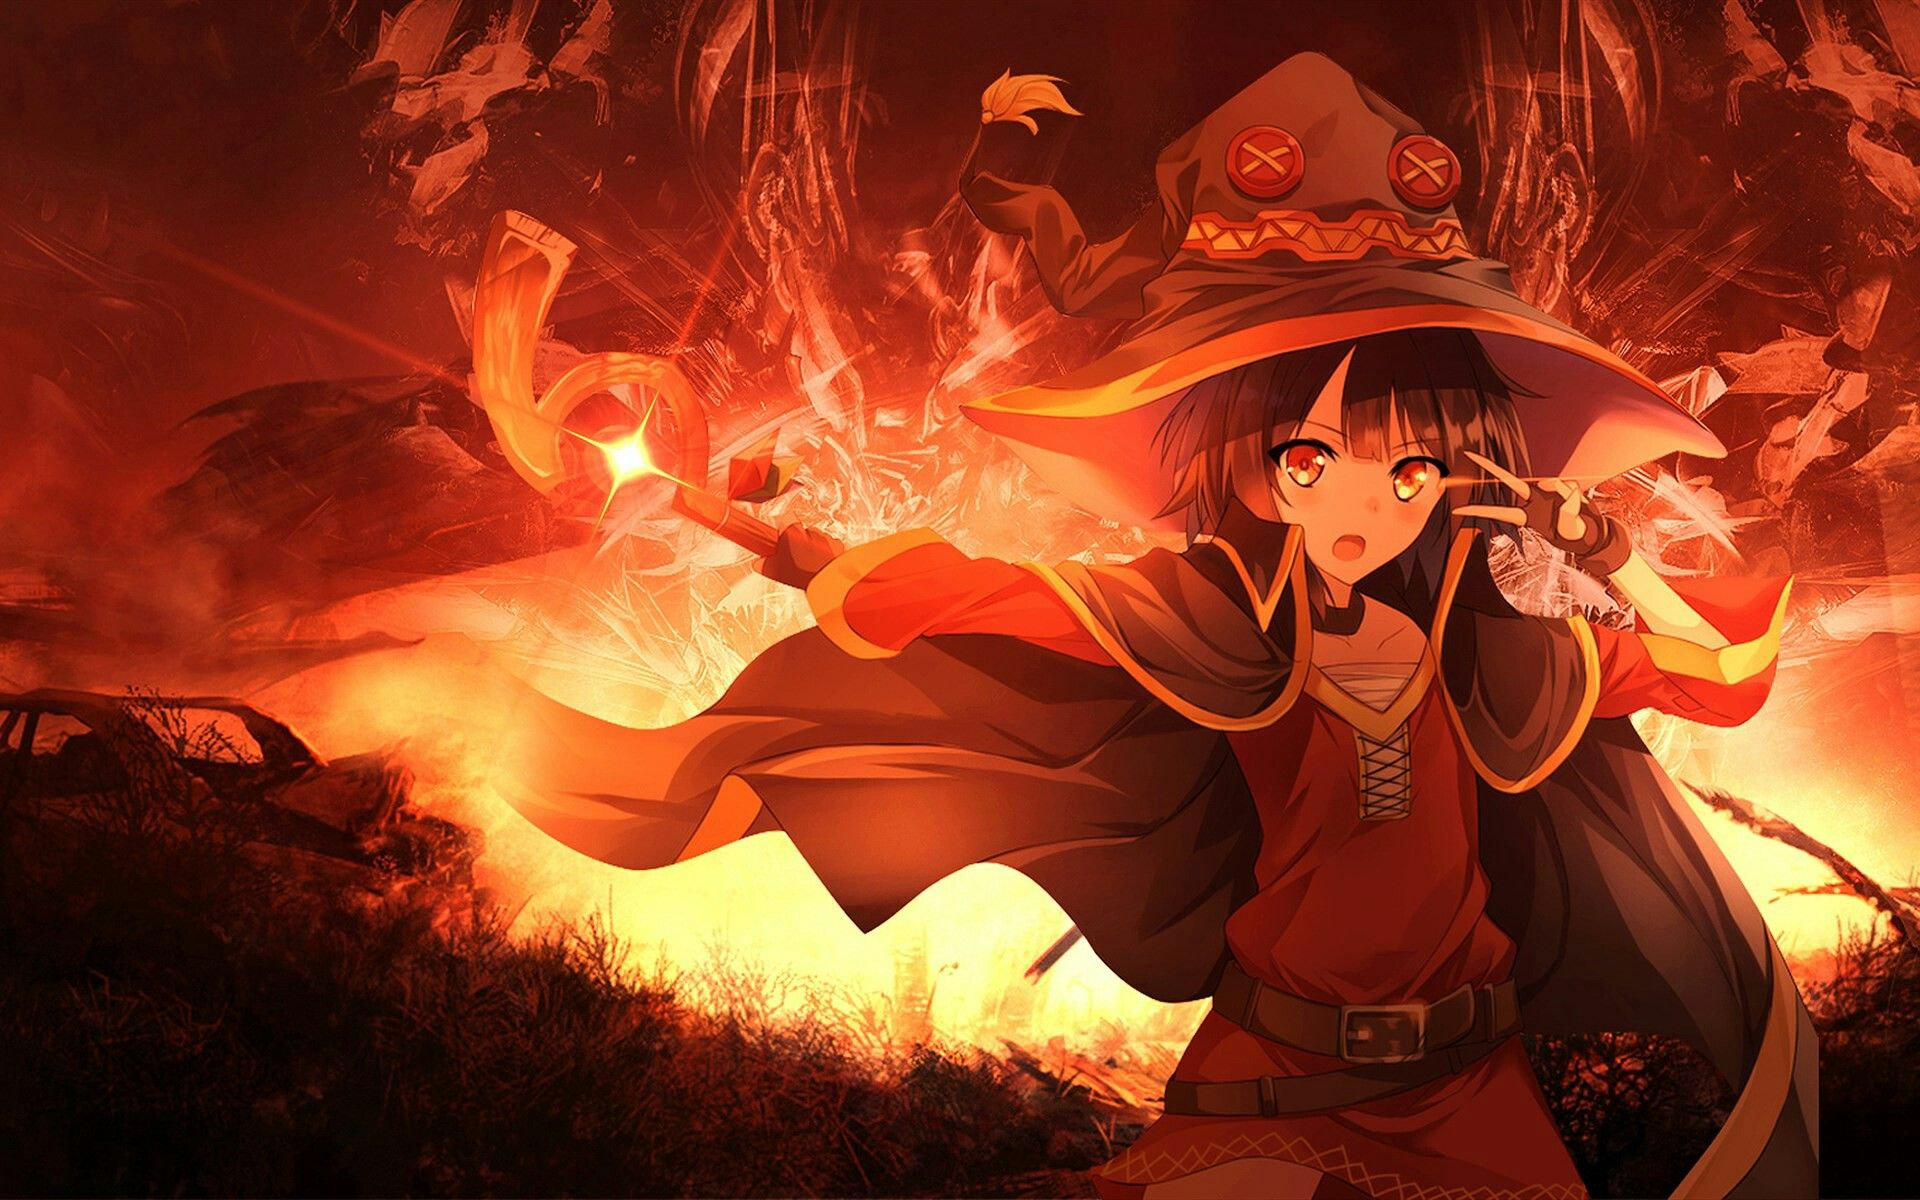 Megumin (With images) Anime witch, Anime wallpaper